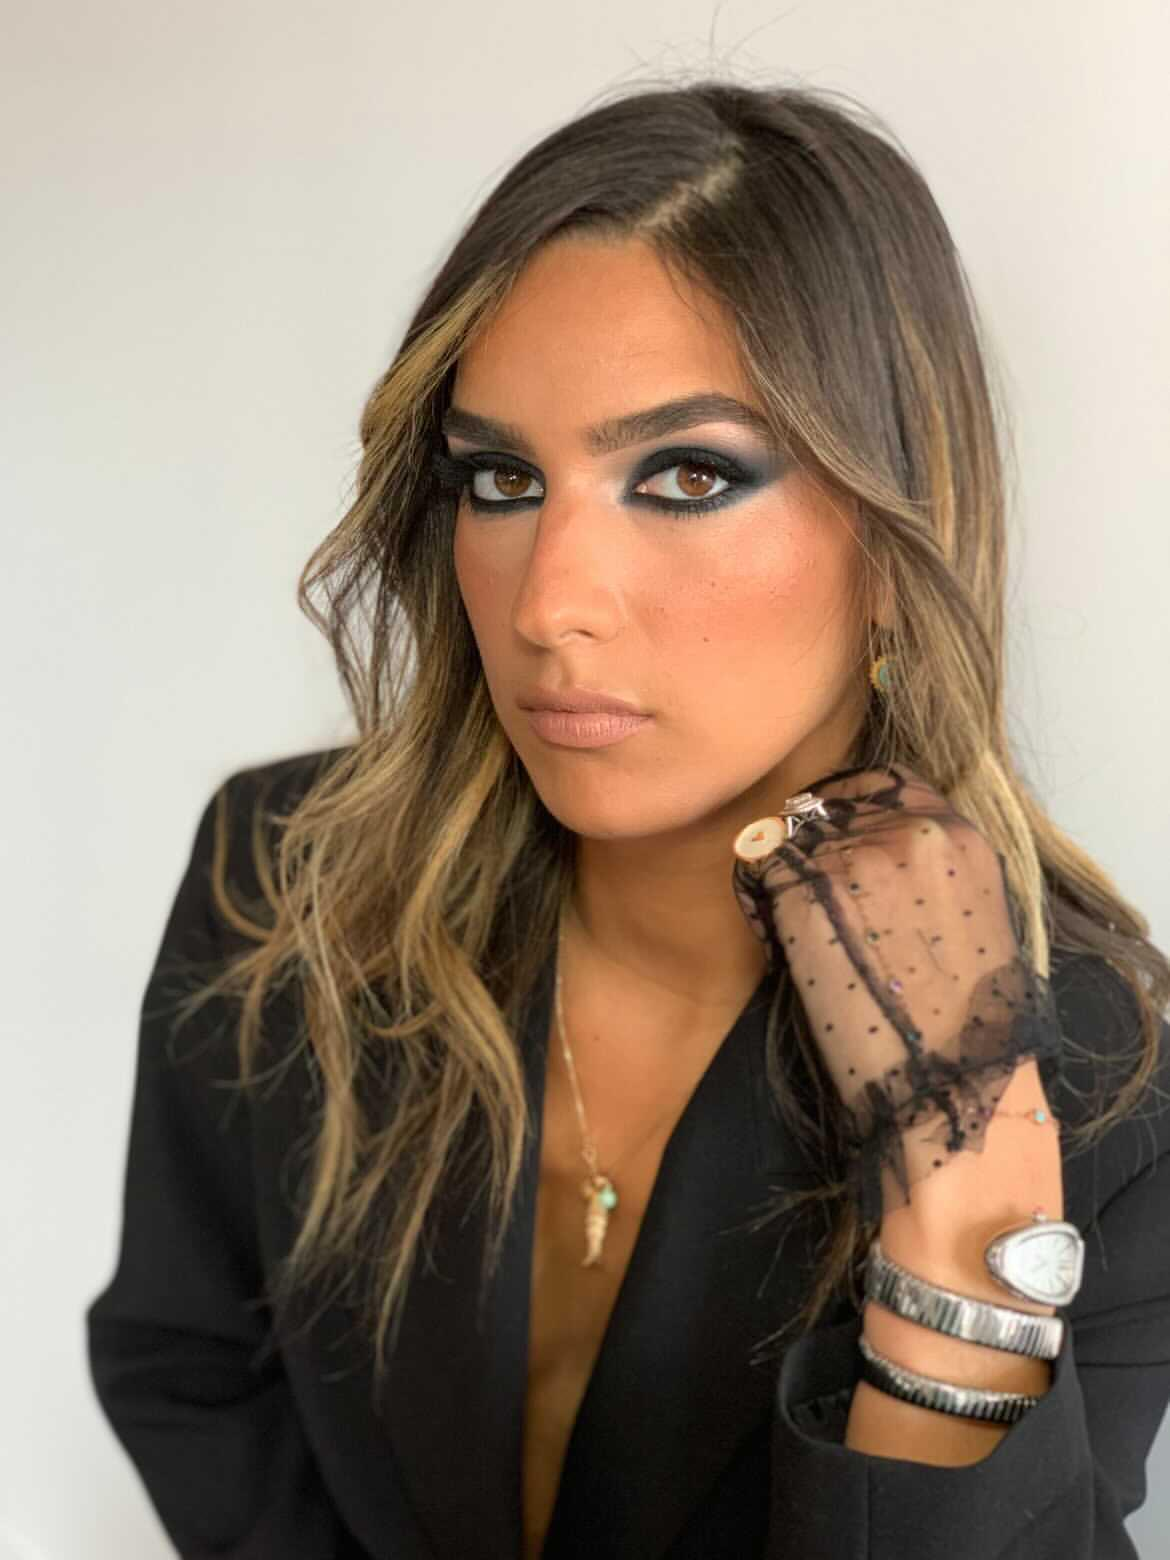 Maquillage Mariage France #199770772